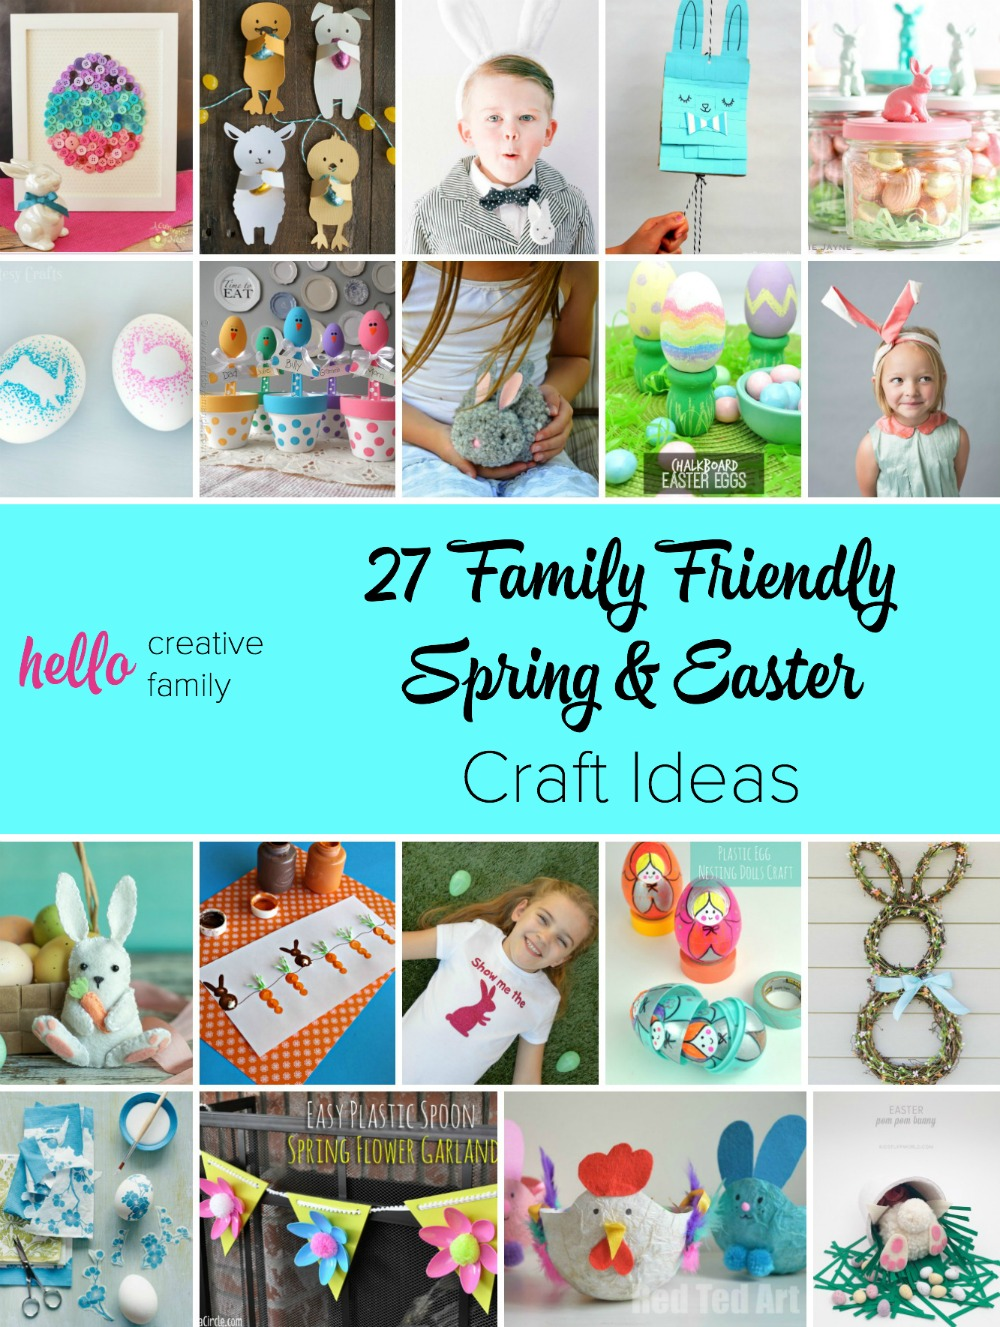 27 family friendly spring and easter craft ideas hello creative so many adorable spring and easter craft ideas here i love that they are family negle Choice Image